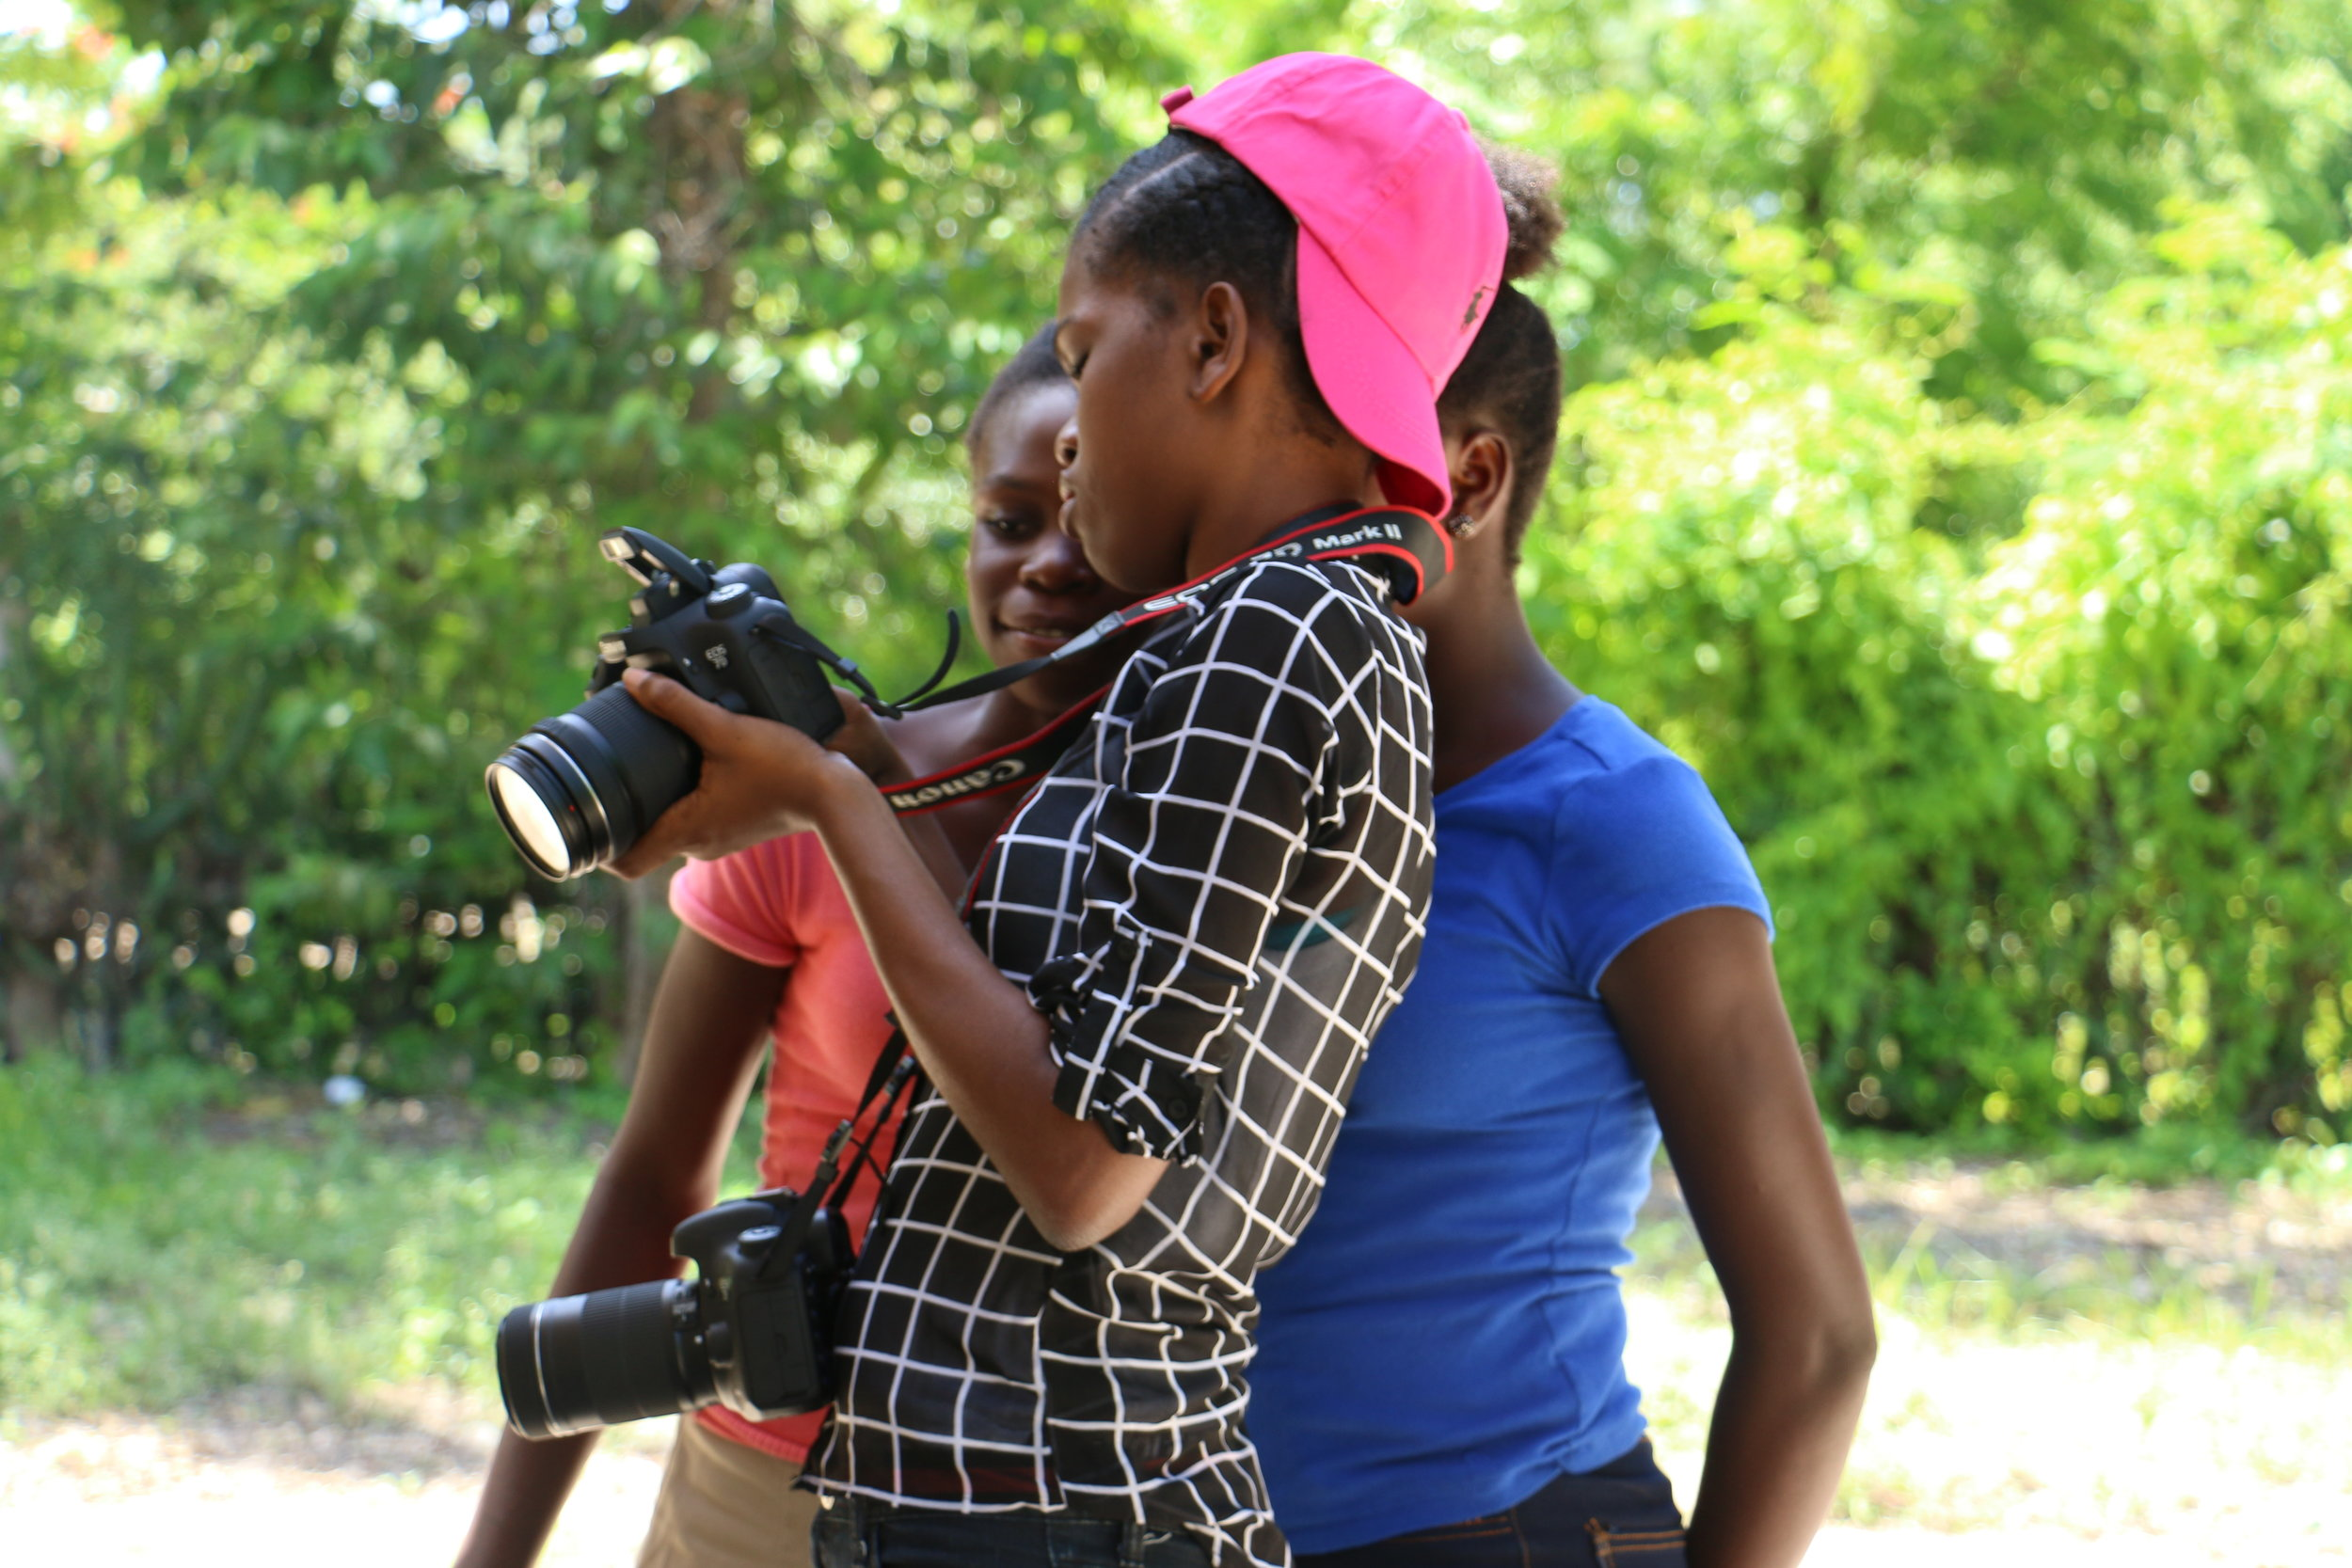 Yolna Fraus offered master classes in photography for apprentices and participants during her internship with LIDE.